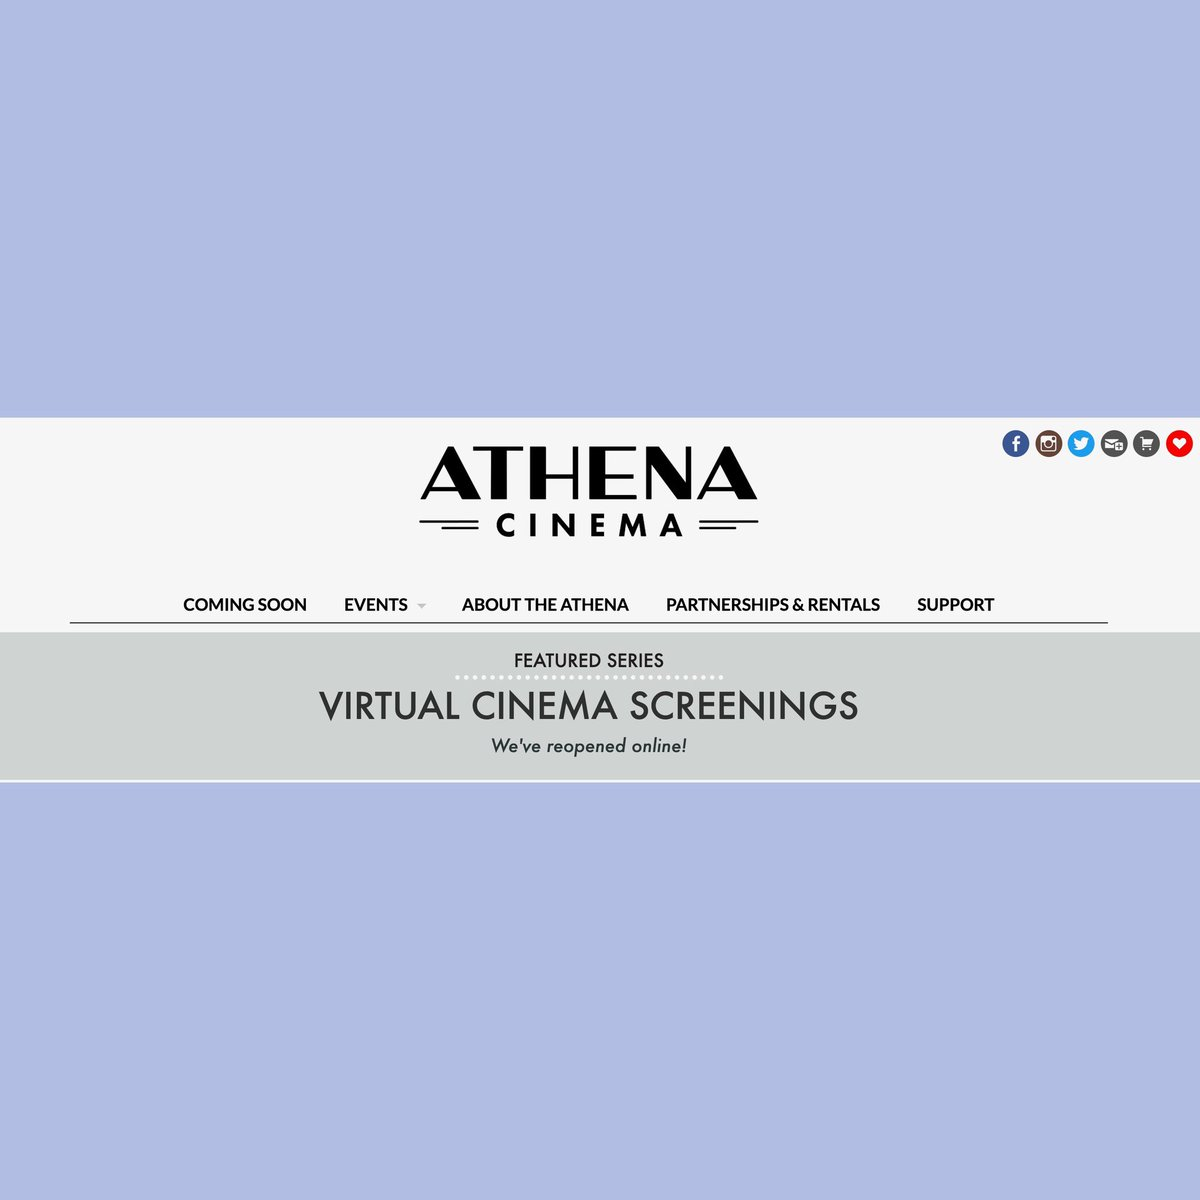 Support one of our favorite local businesses, the Athena by watching their online virtual screenings! https://t.co/1WxEigsD70 https://t.co/l3wMxbal50